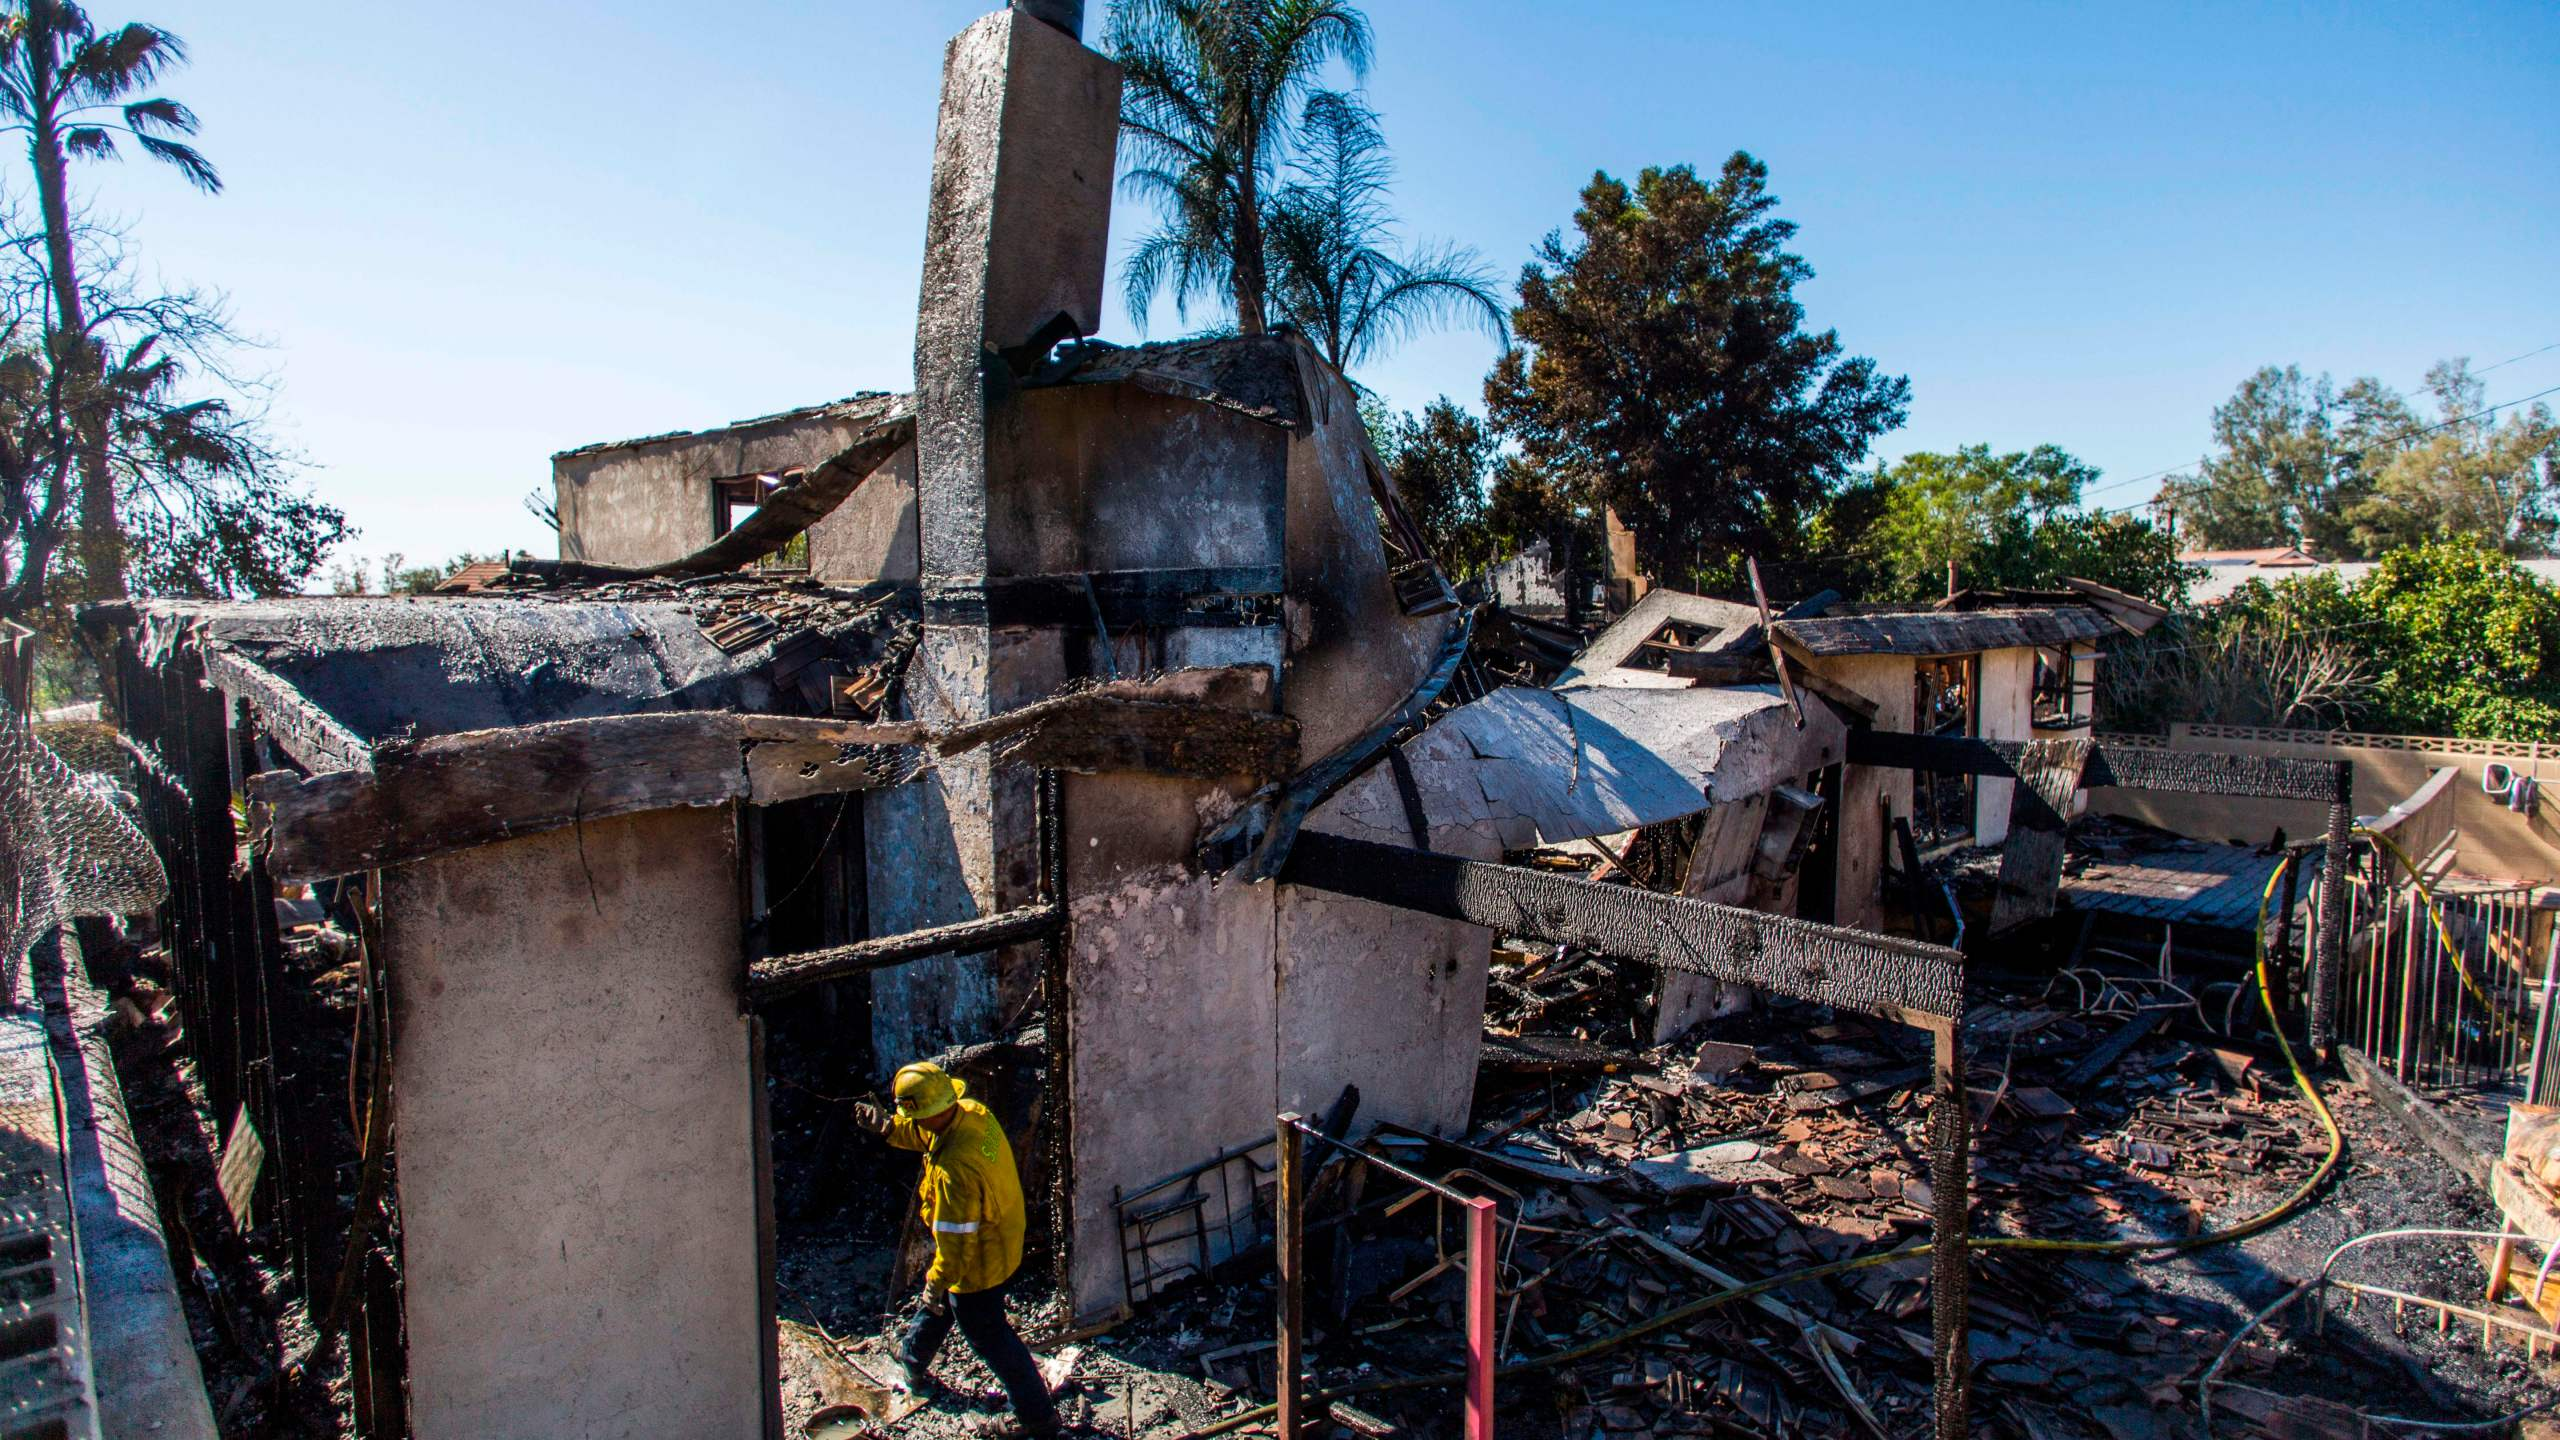 Firefighters look at what is left of a home on Viento Way after several homes were burned by the Hillside Fire in San Bernardino on Oct. 31, 2019. (Credit: Apu Gomes / AFP / Getty Images)